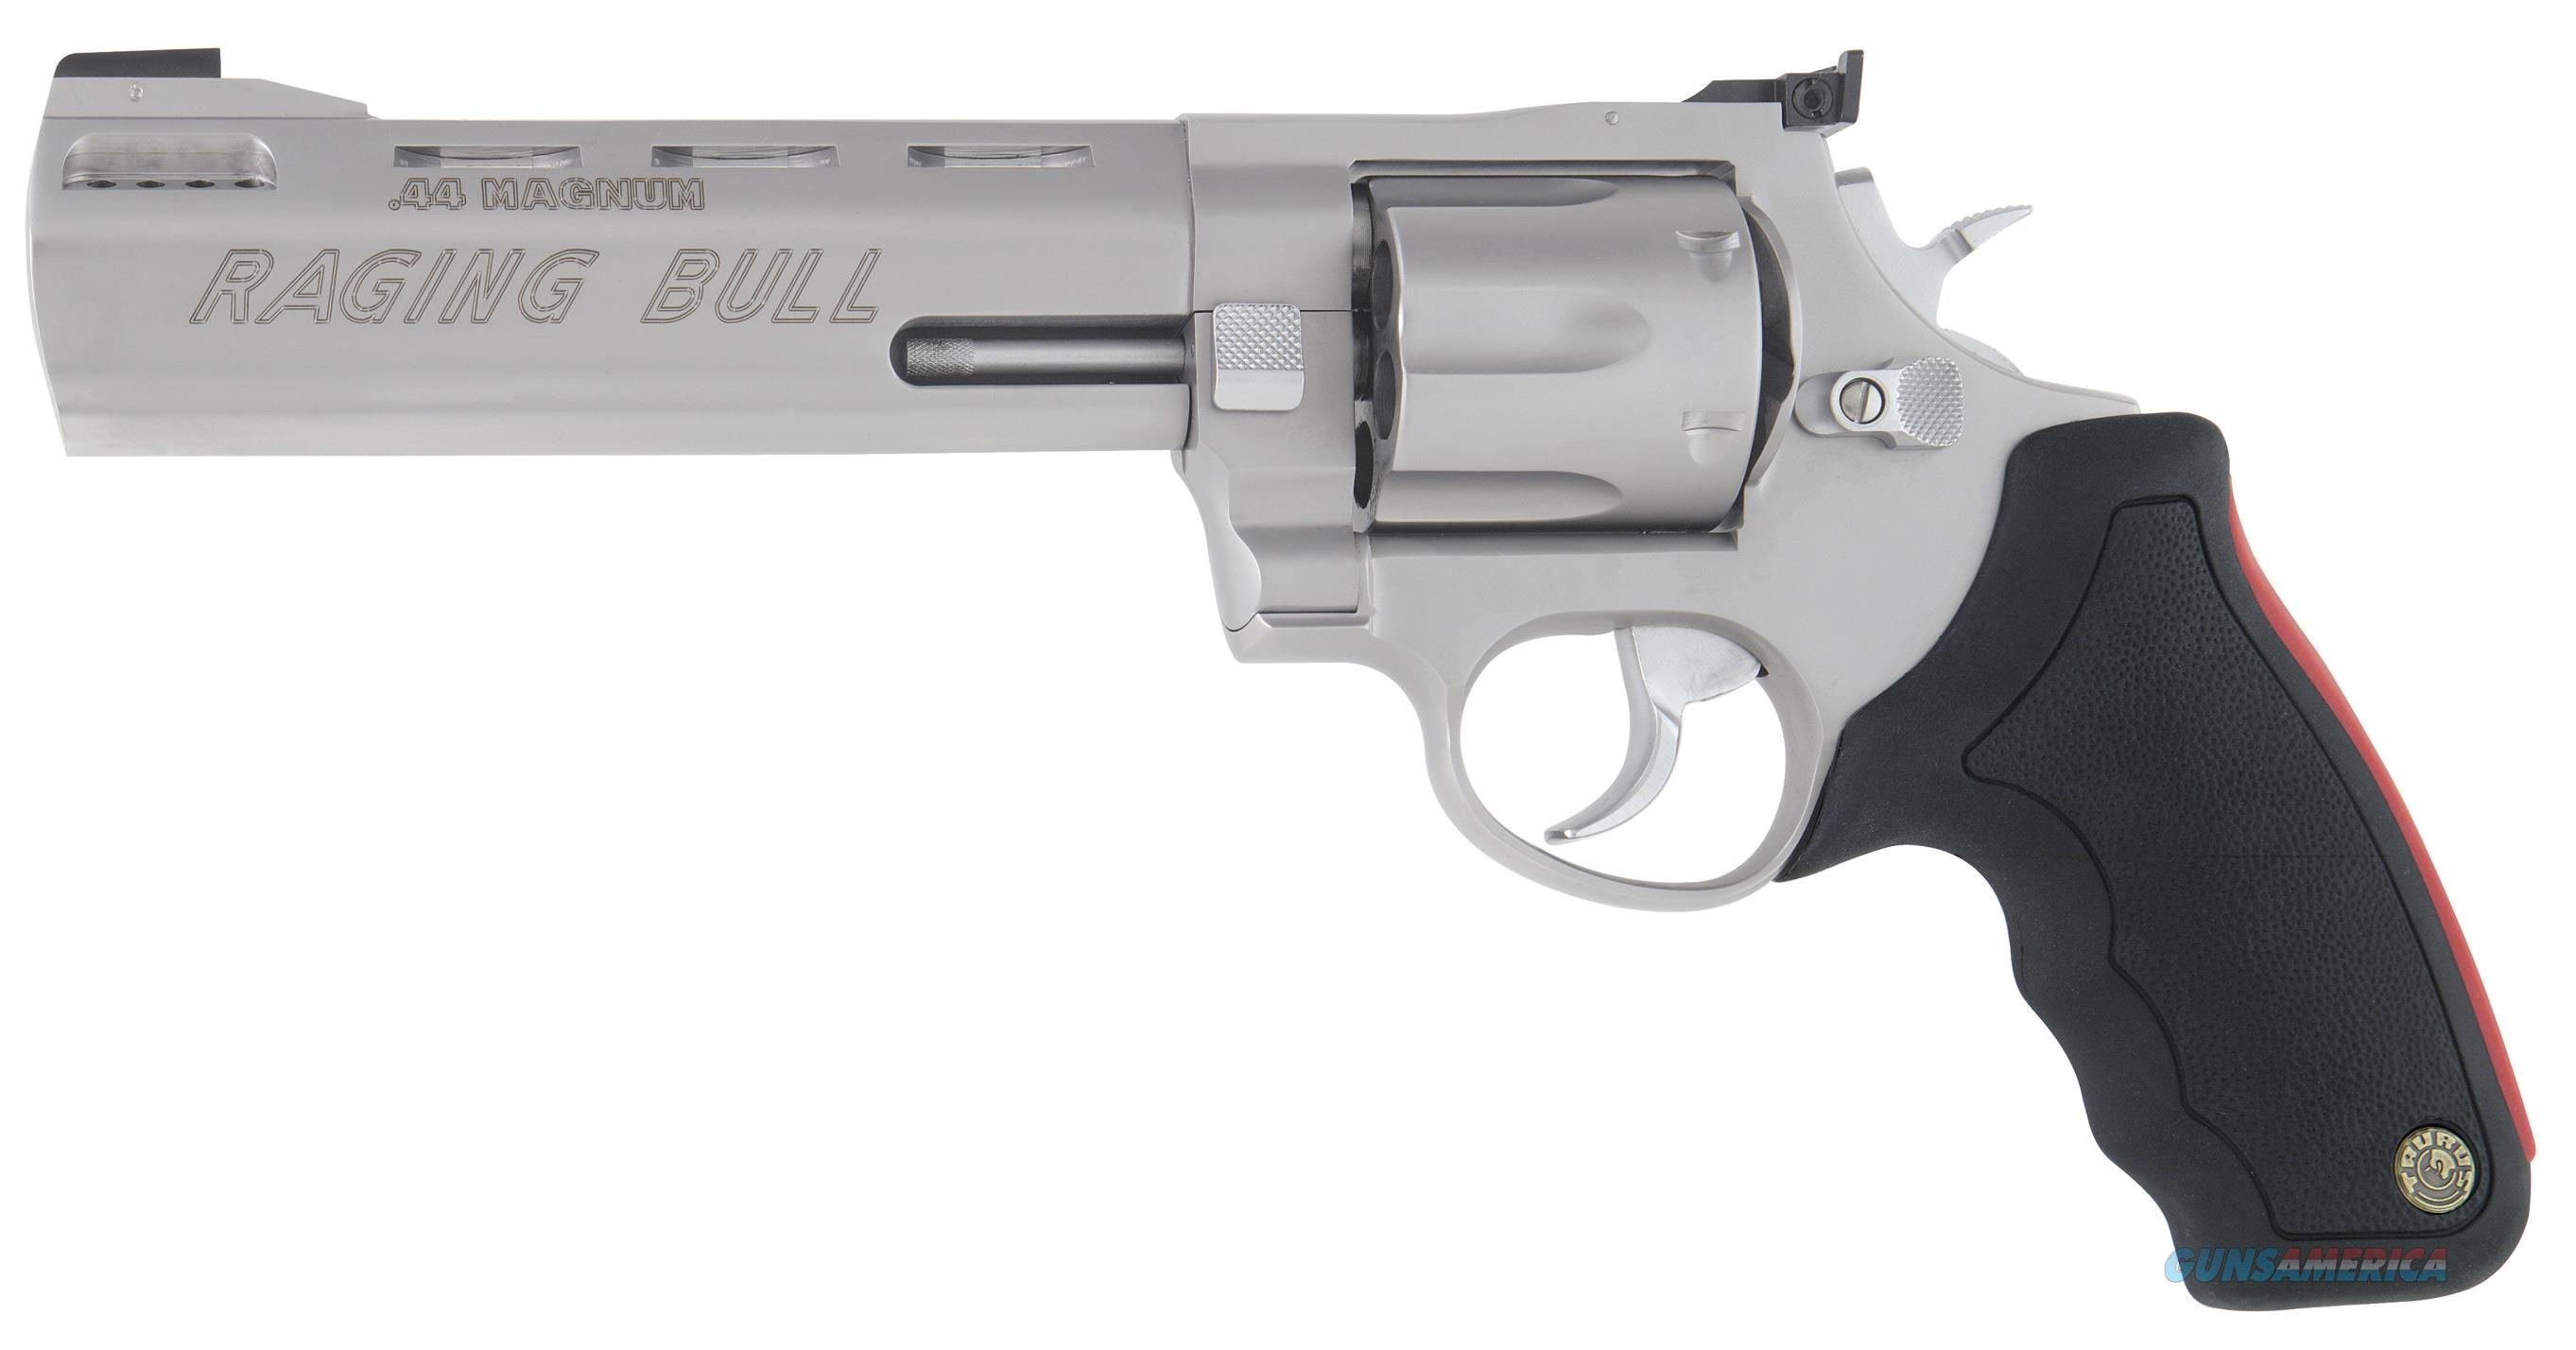 "Taurus Model 444 Raging Bull 44 Mag 6.5"" 6rd - New in Box  Guns > Pistols > Taurus Pistols > Revolvers"